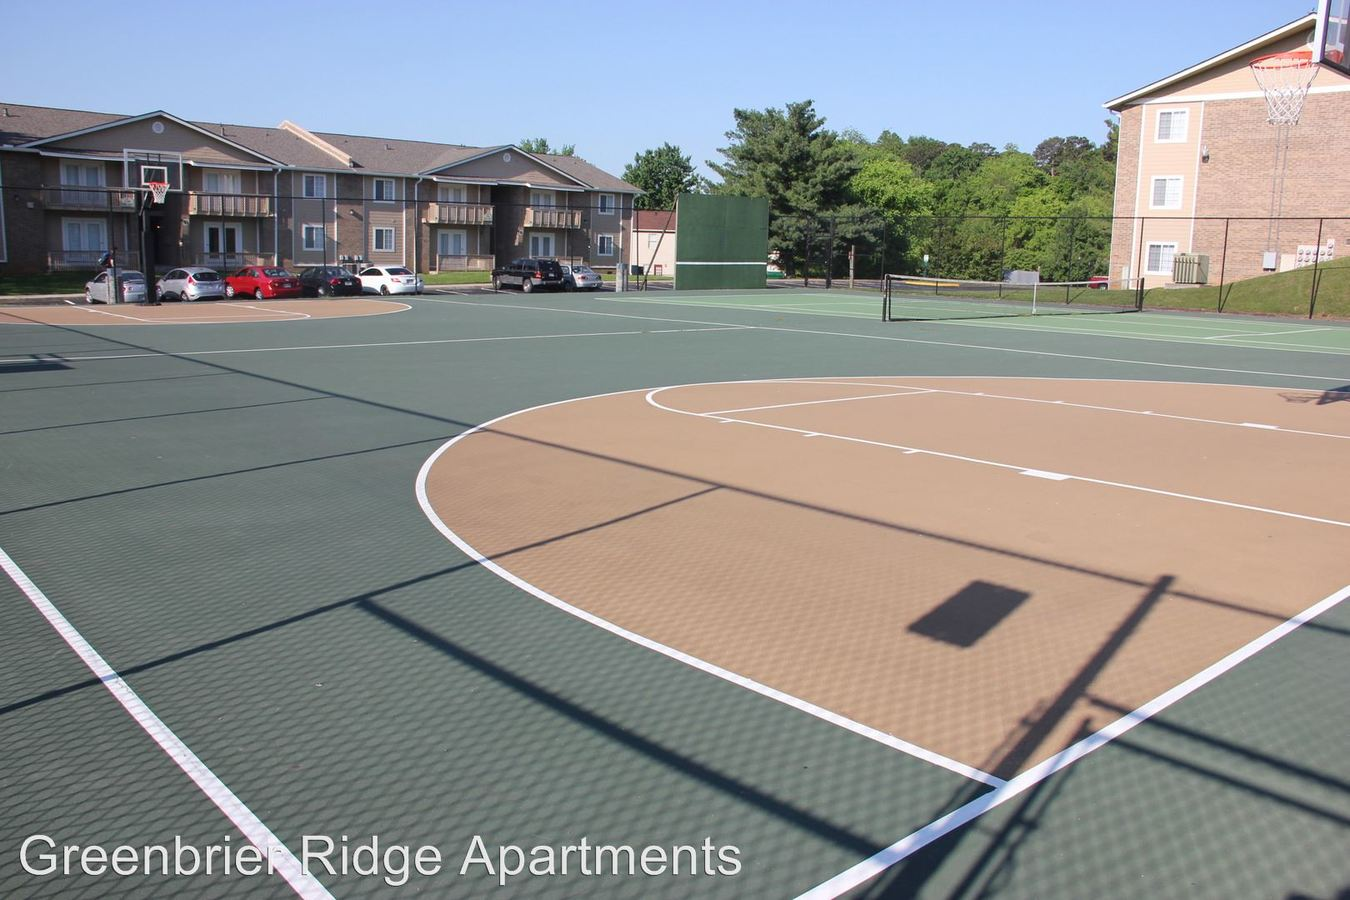 2 Bedrooms 2 Bathrooms Apartment for rent at Greenbrier Ridge in Knoxville, TN